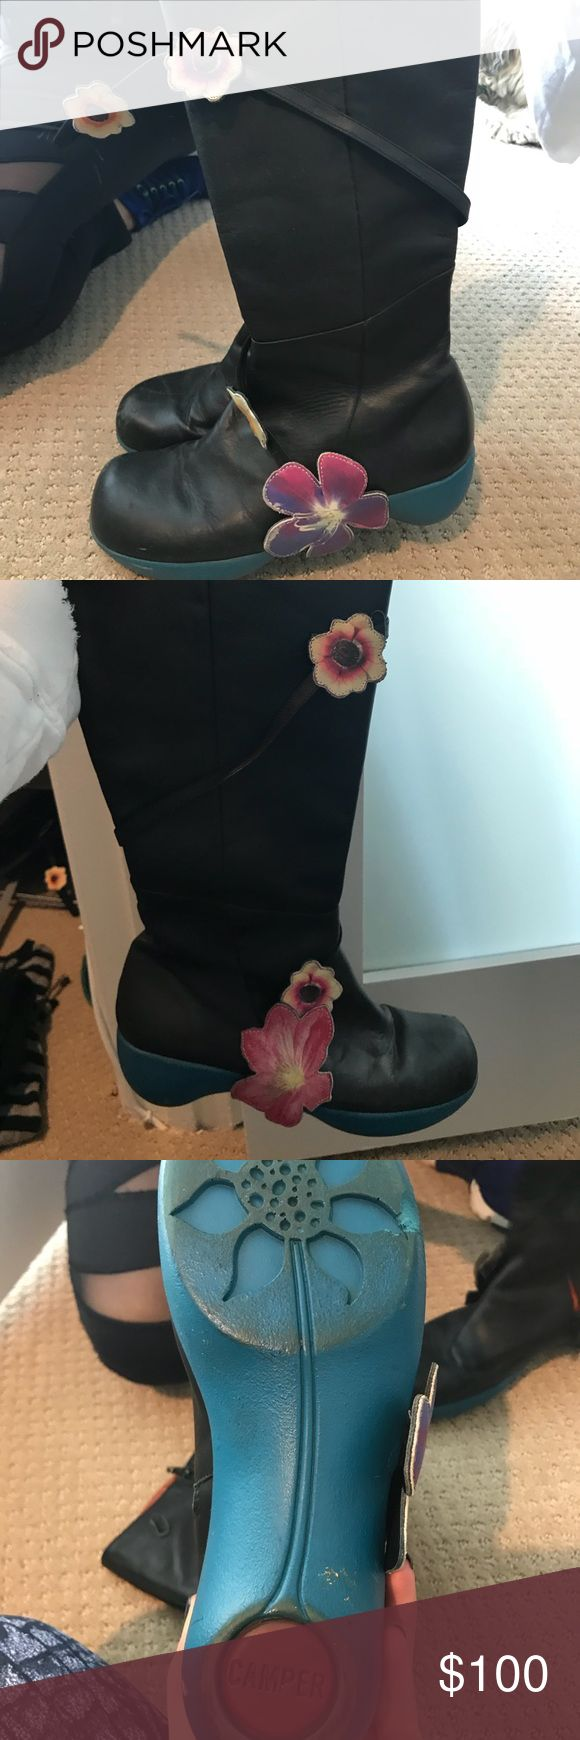 Camper boots with flowers Vintage Camper boots Size 38. Excellent condition. Collection item! Detachable flowers Camper Shoes Heeled Boots